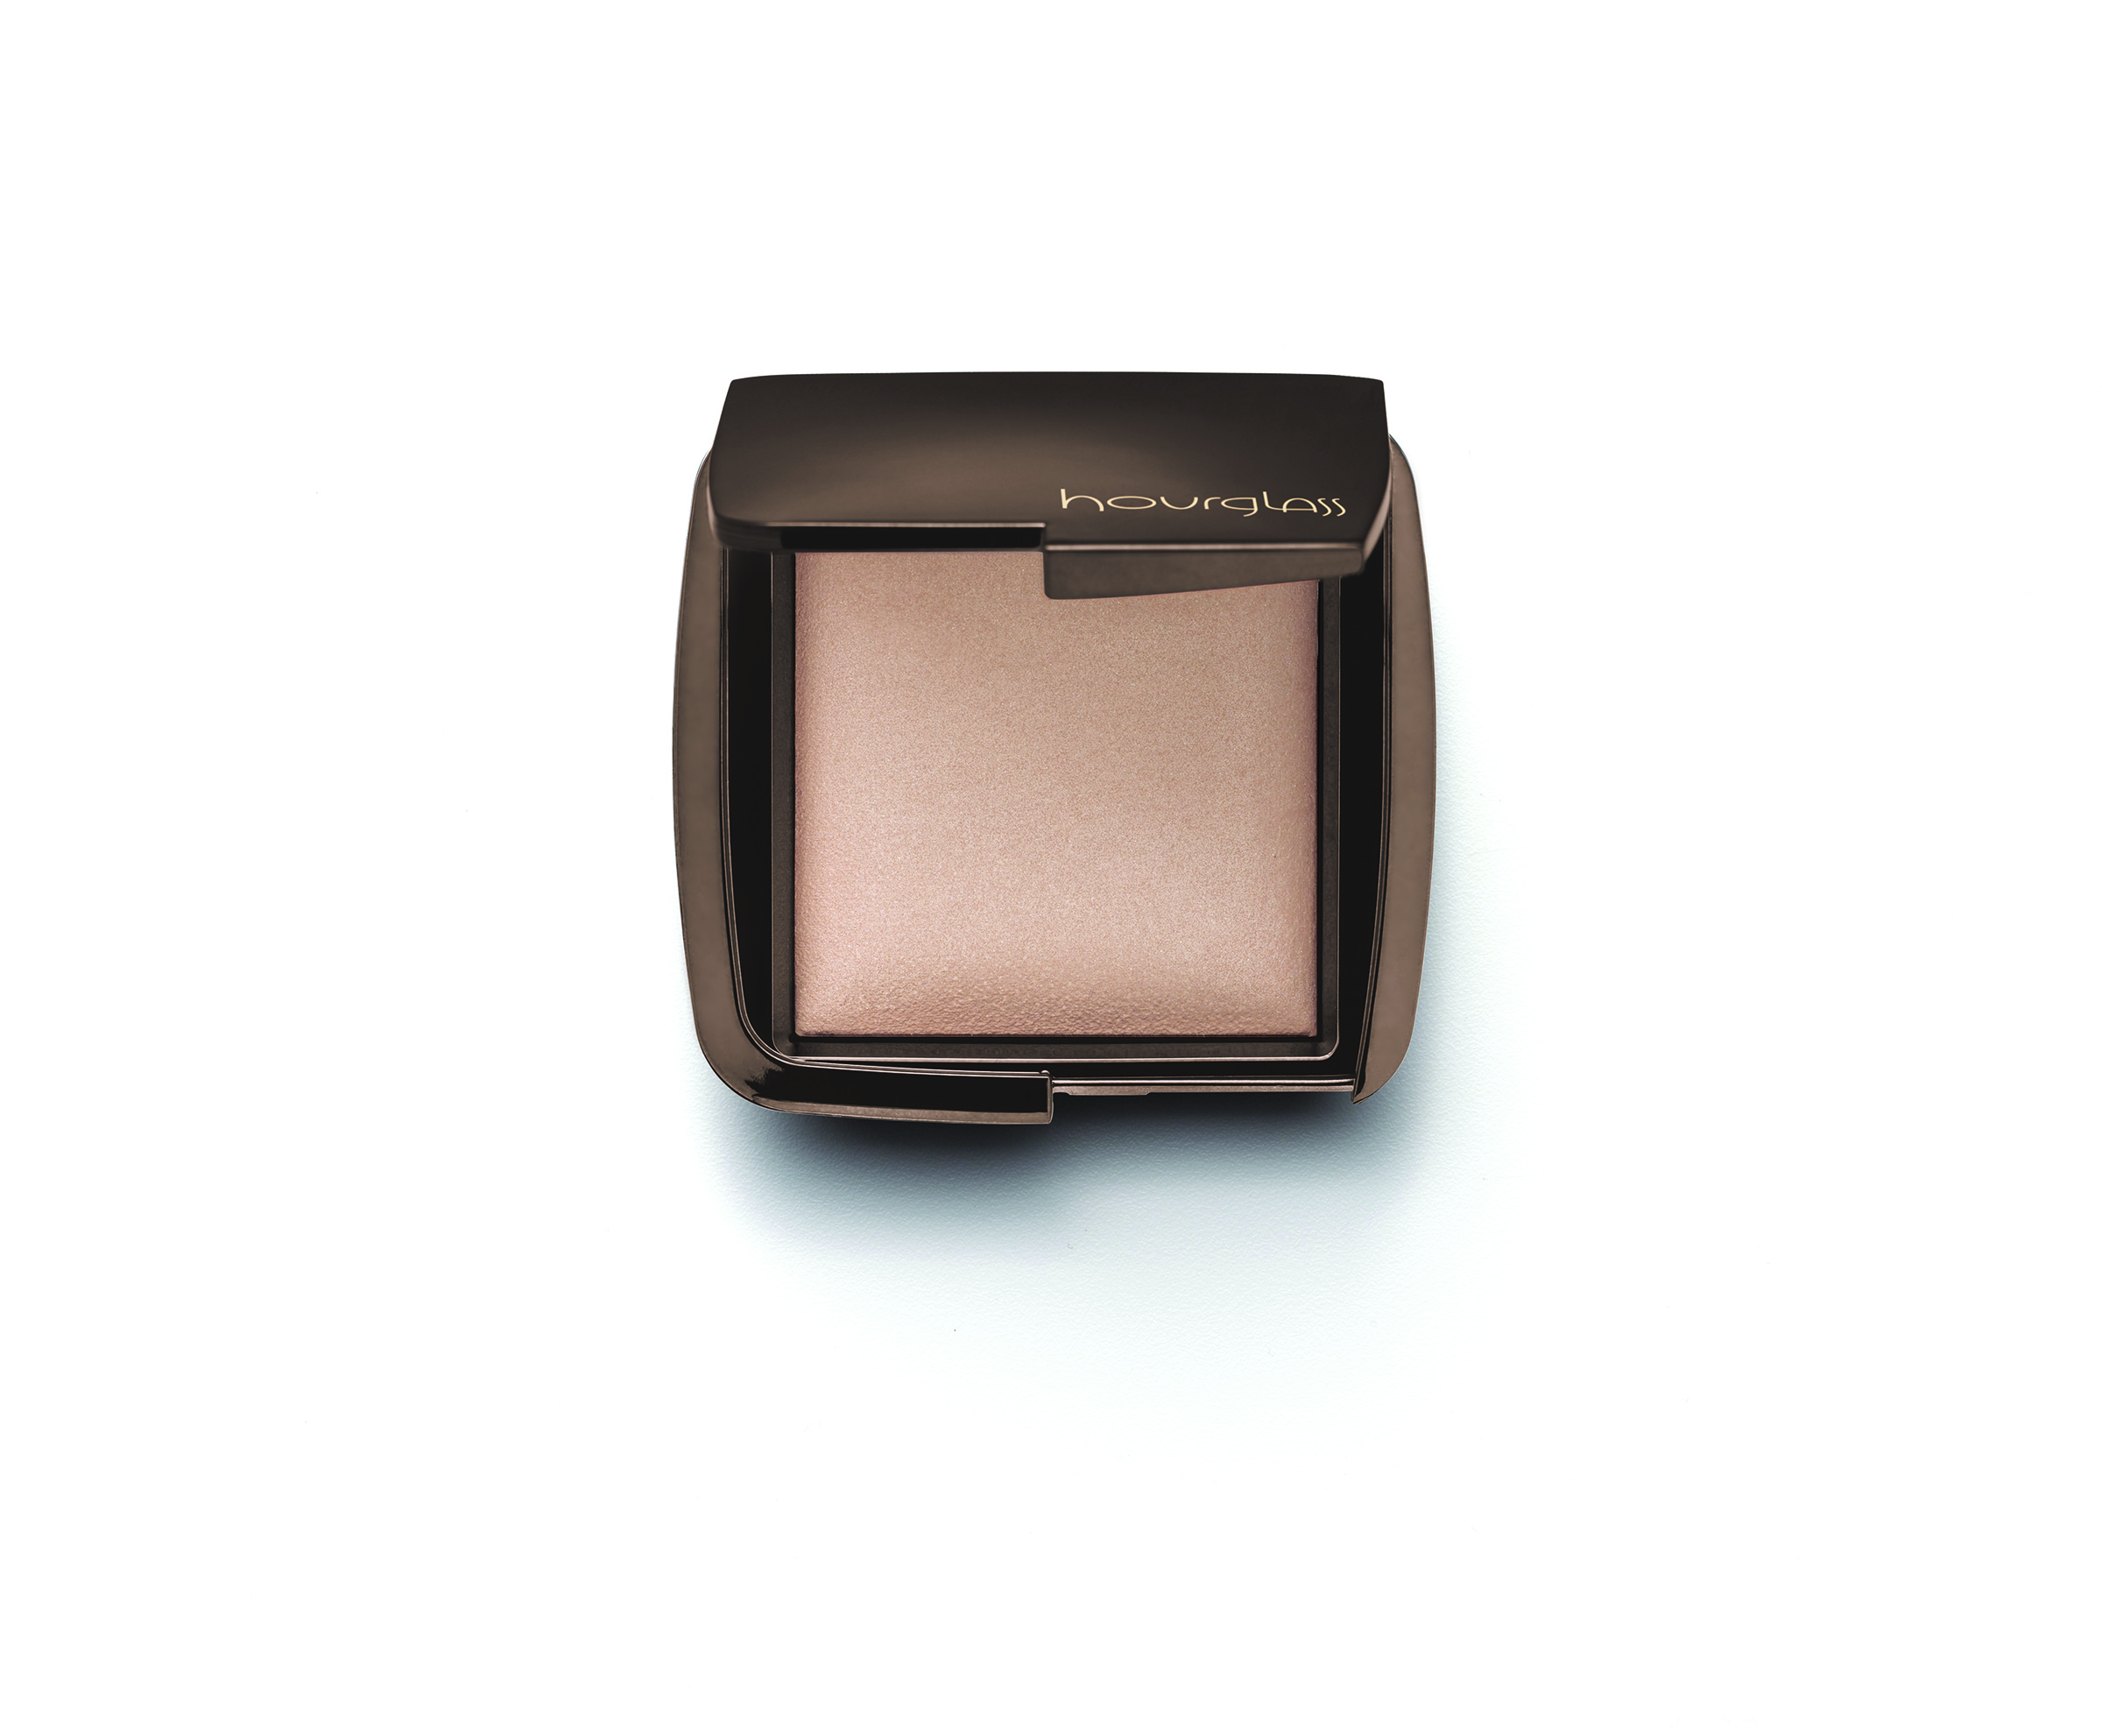 Hourglass launches the cutting edge talc-free Ambient Lighting Powder to cast you in a flattering new light. Try, £38. uk.spacenk.com